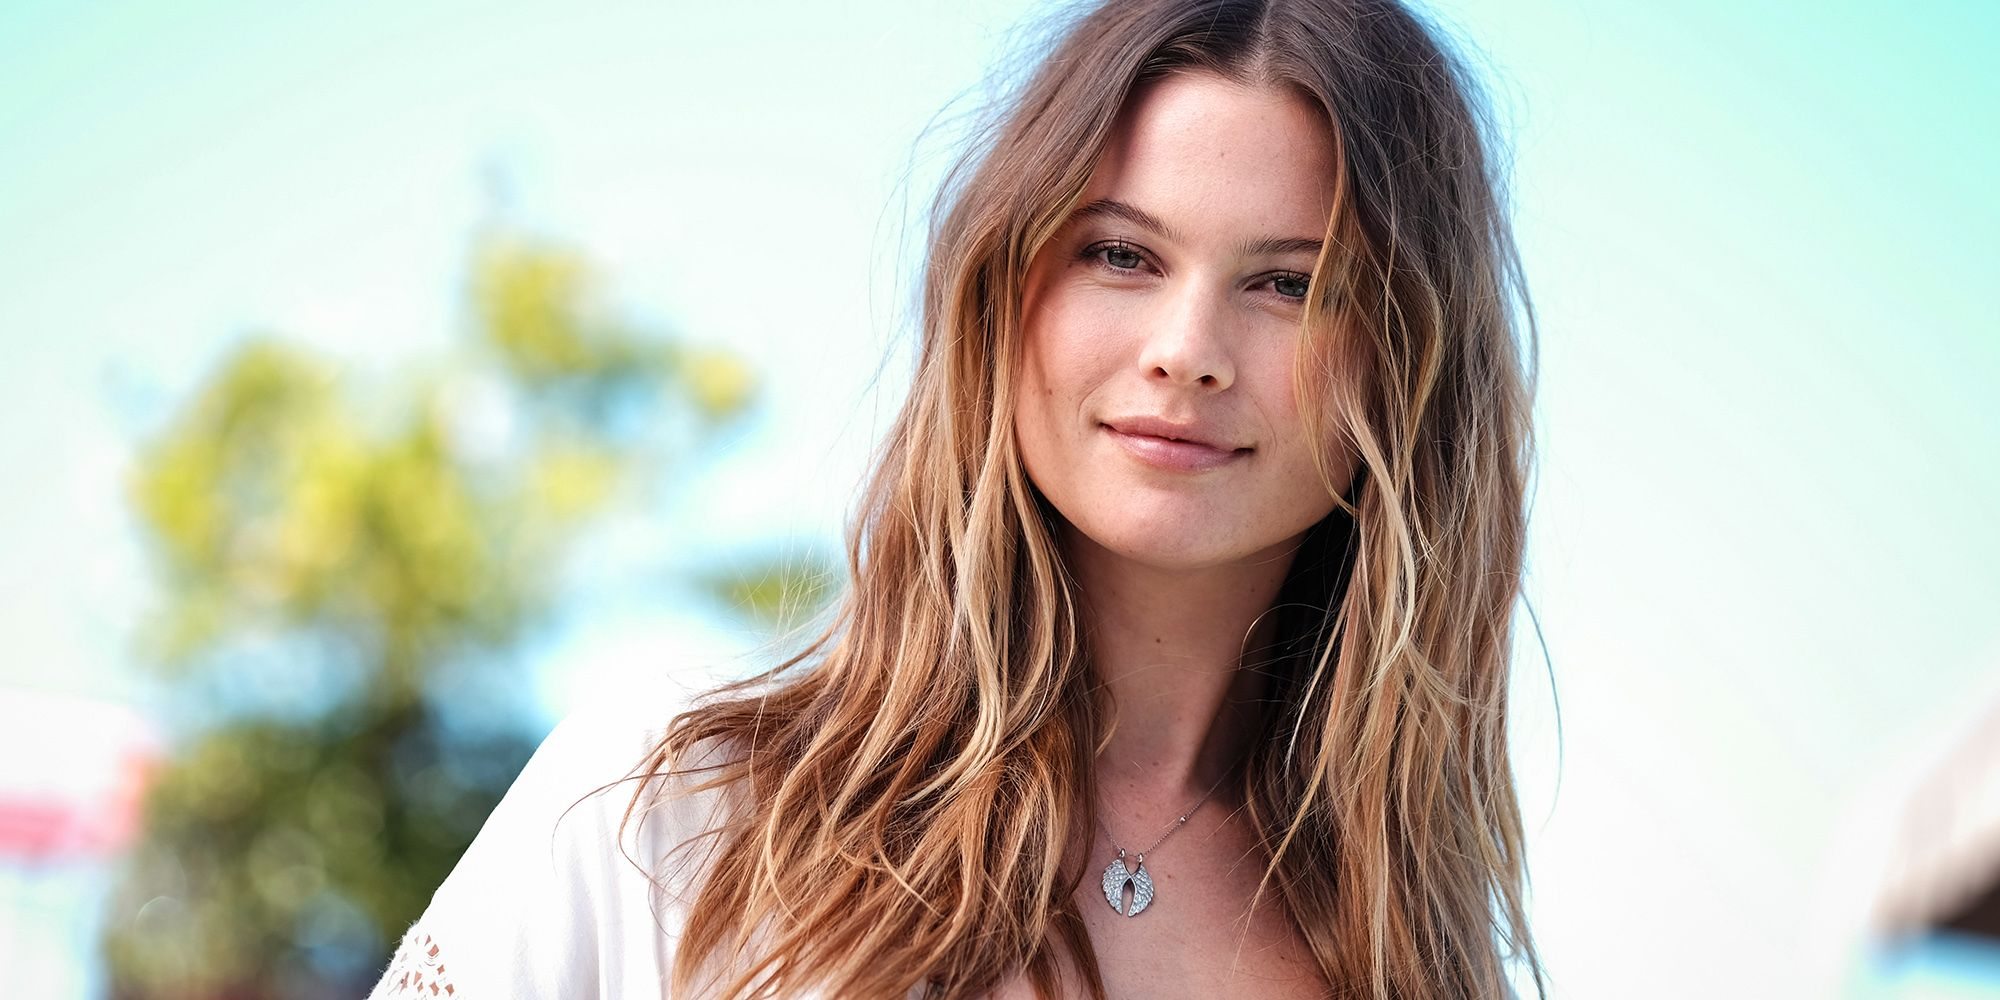 Pictures Behati Prinsloo nudes (82 photos), Sexy, Paparazzi, Twitter, swimsuit 2020